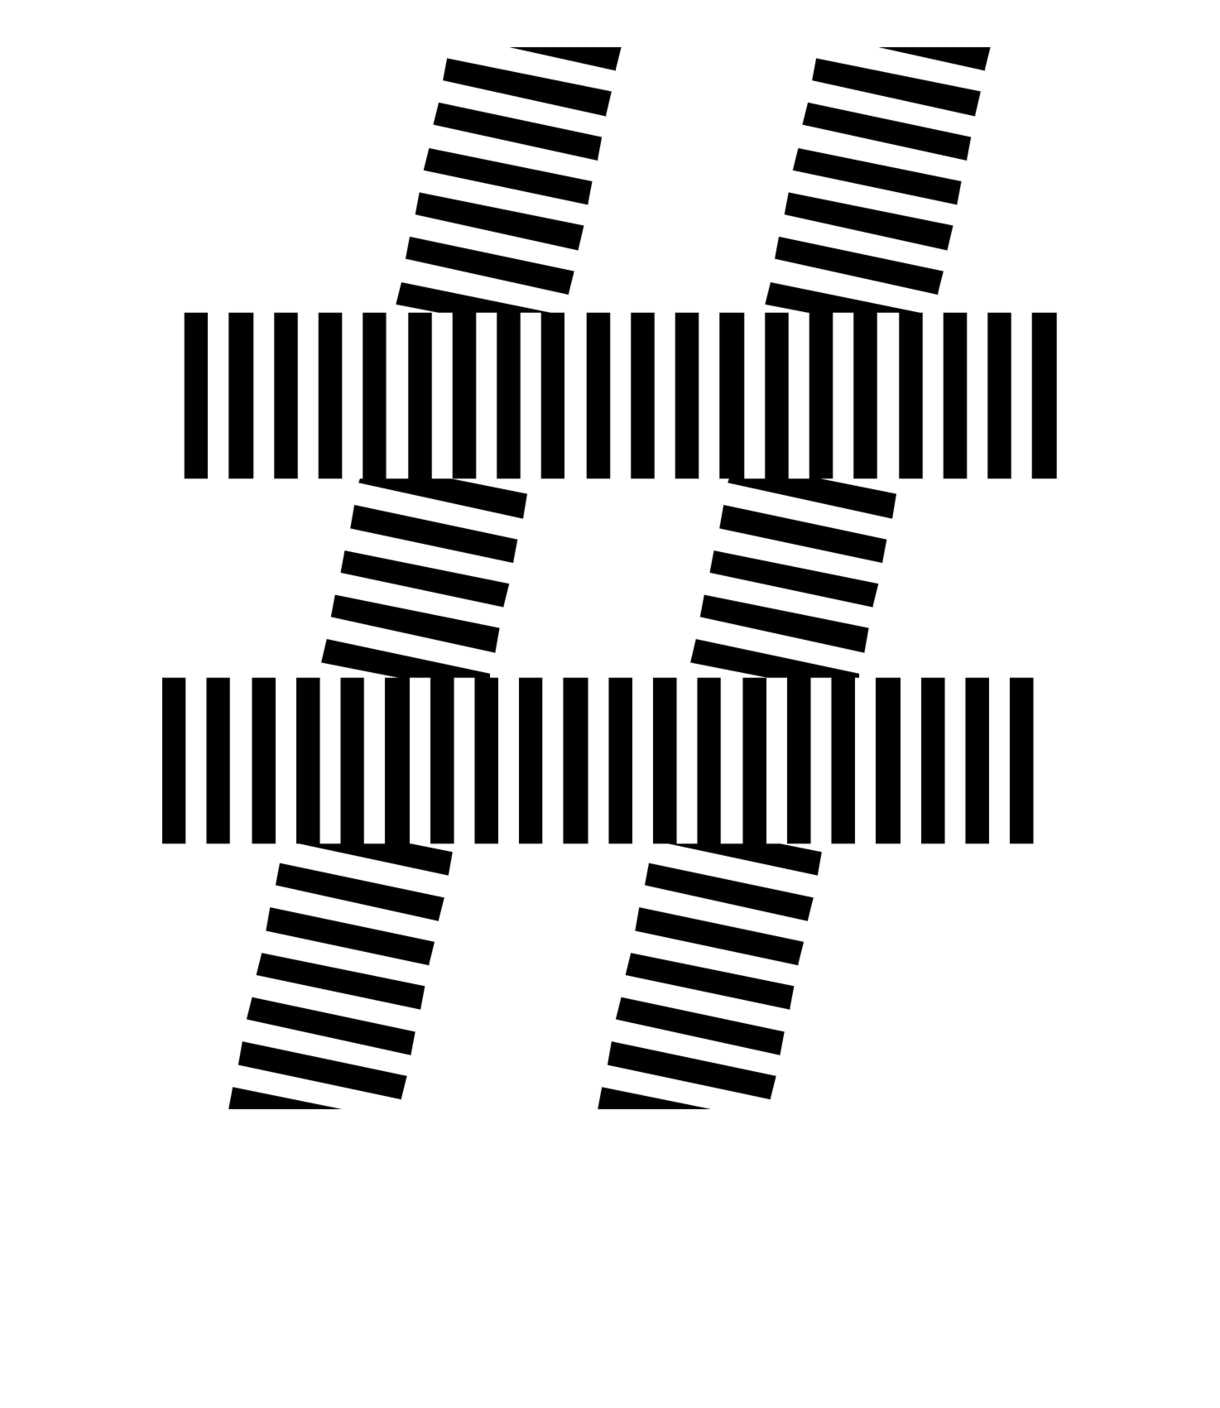 pattern-project-letters-39-1220x1407px